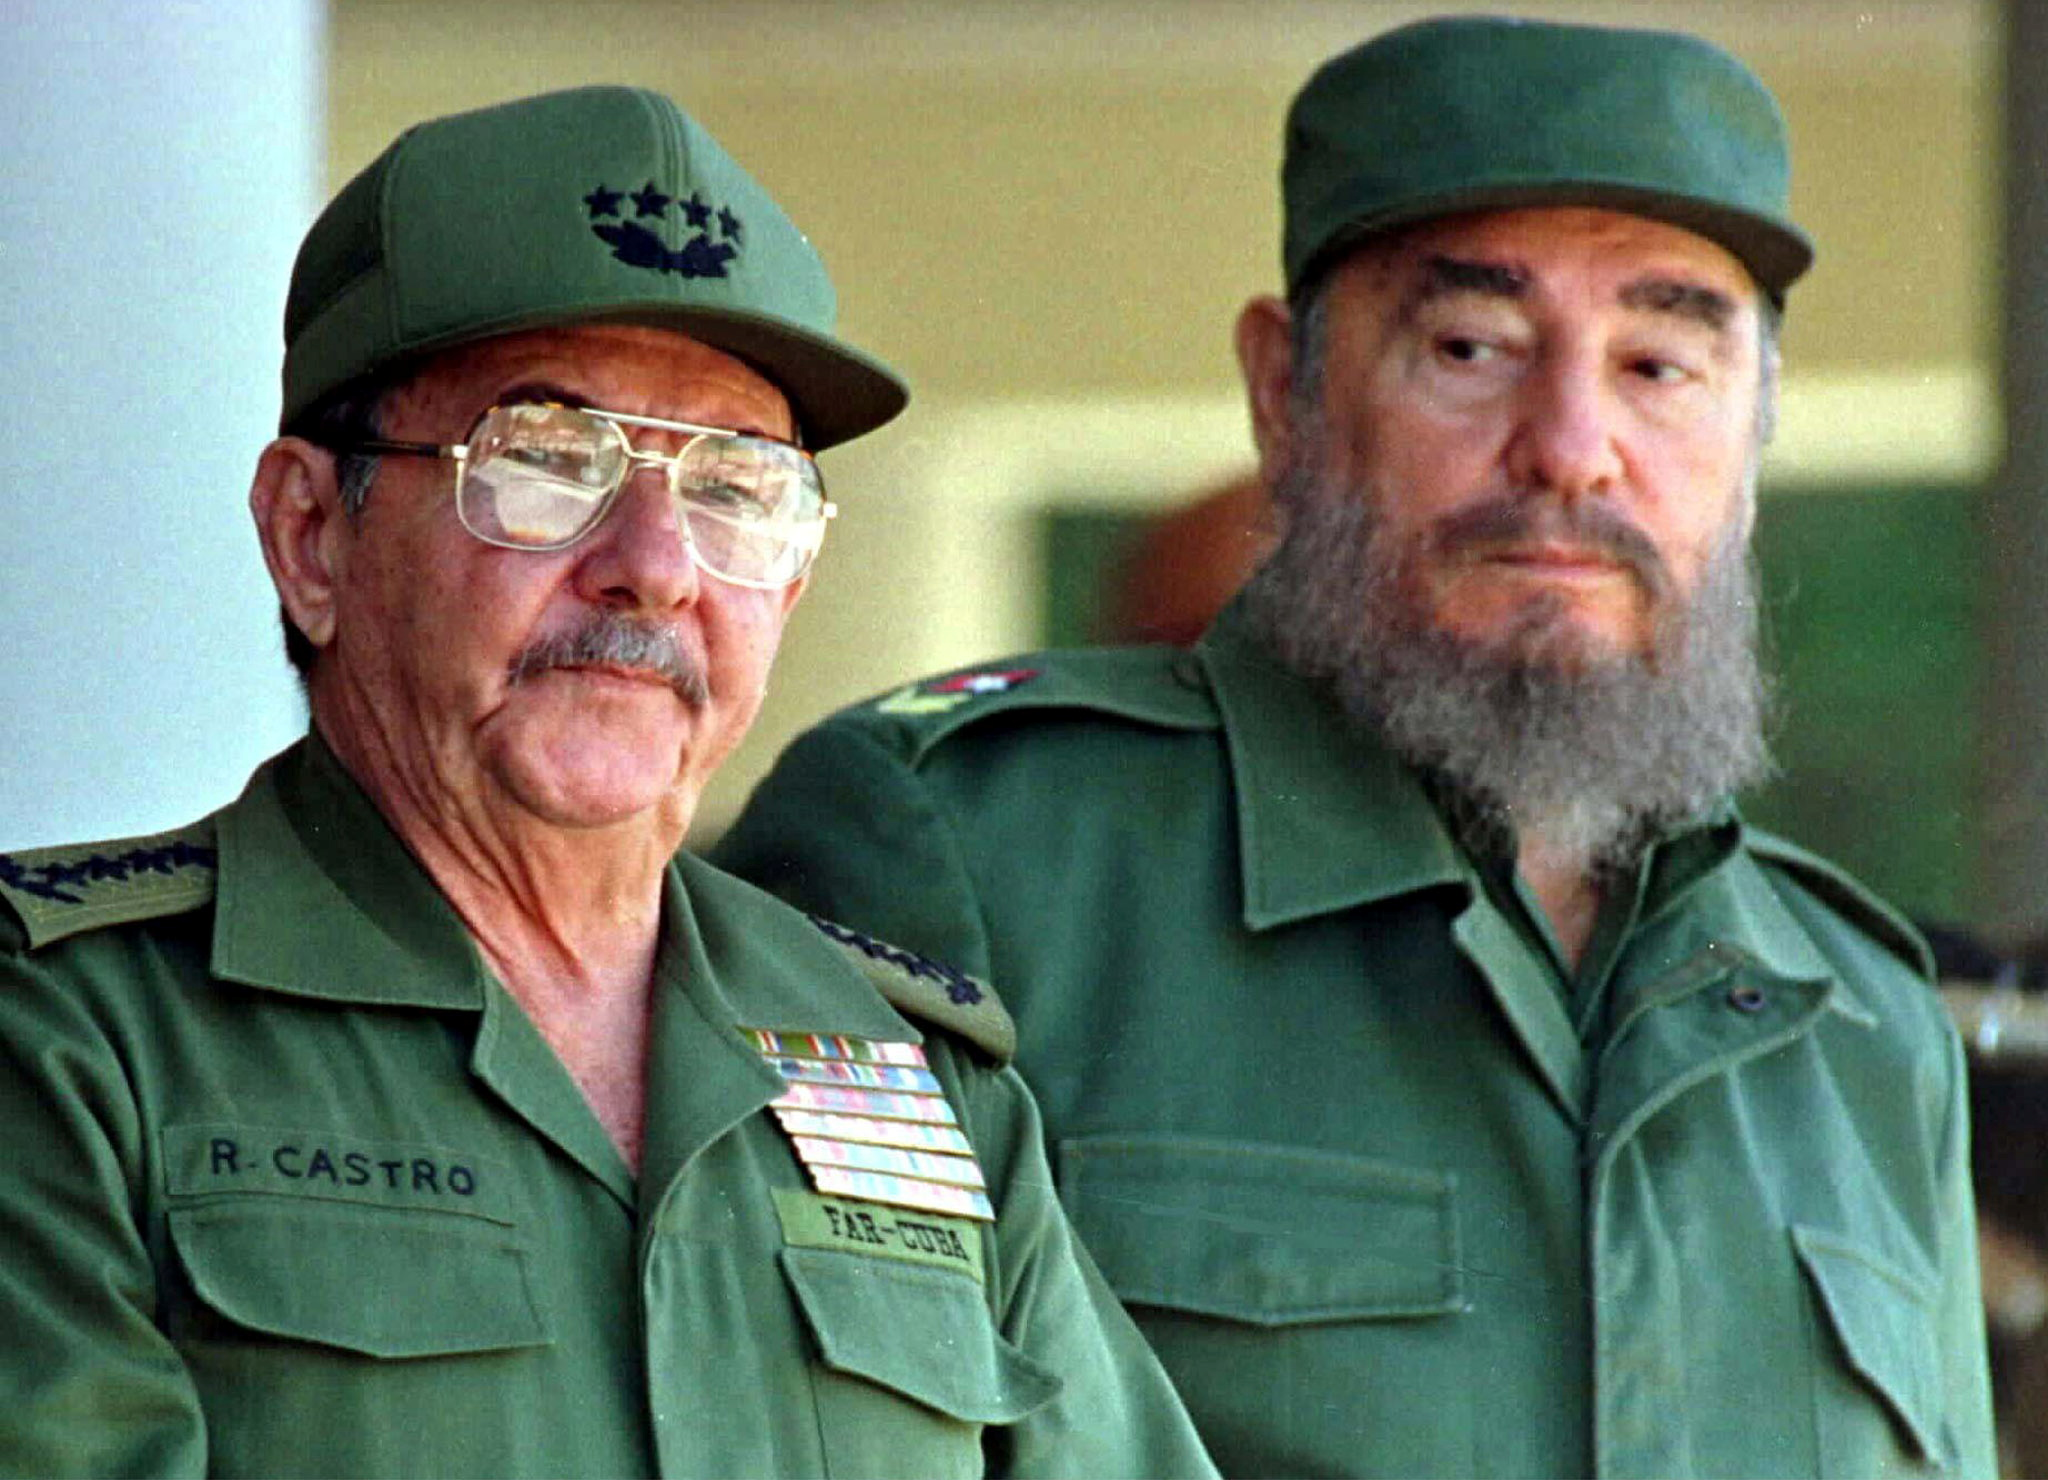 Fidel Castro and his brother, Armed Forces Minister Raul Castro (L), preside over a ceremony marking the 100th anniversary of the death of independence hero Antonio Maceo, in Havana, Cuba December 7, 1996.   REUTERS/Rafael Perez/File Photo